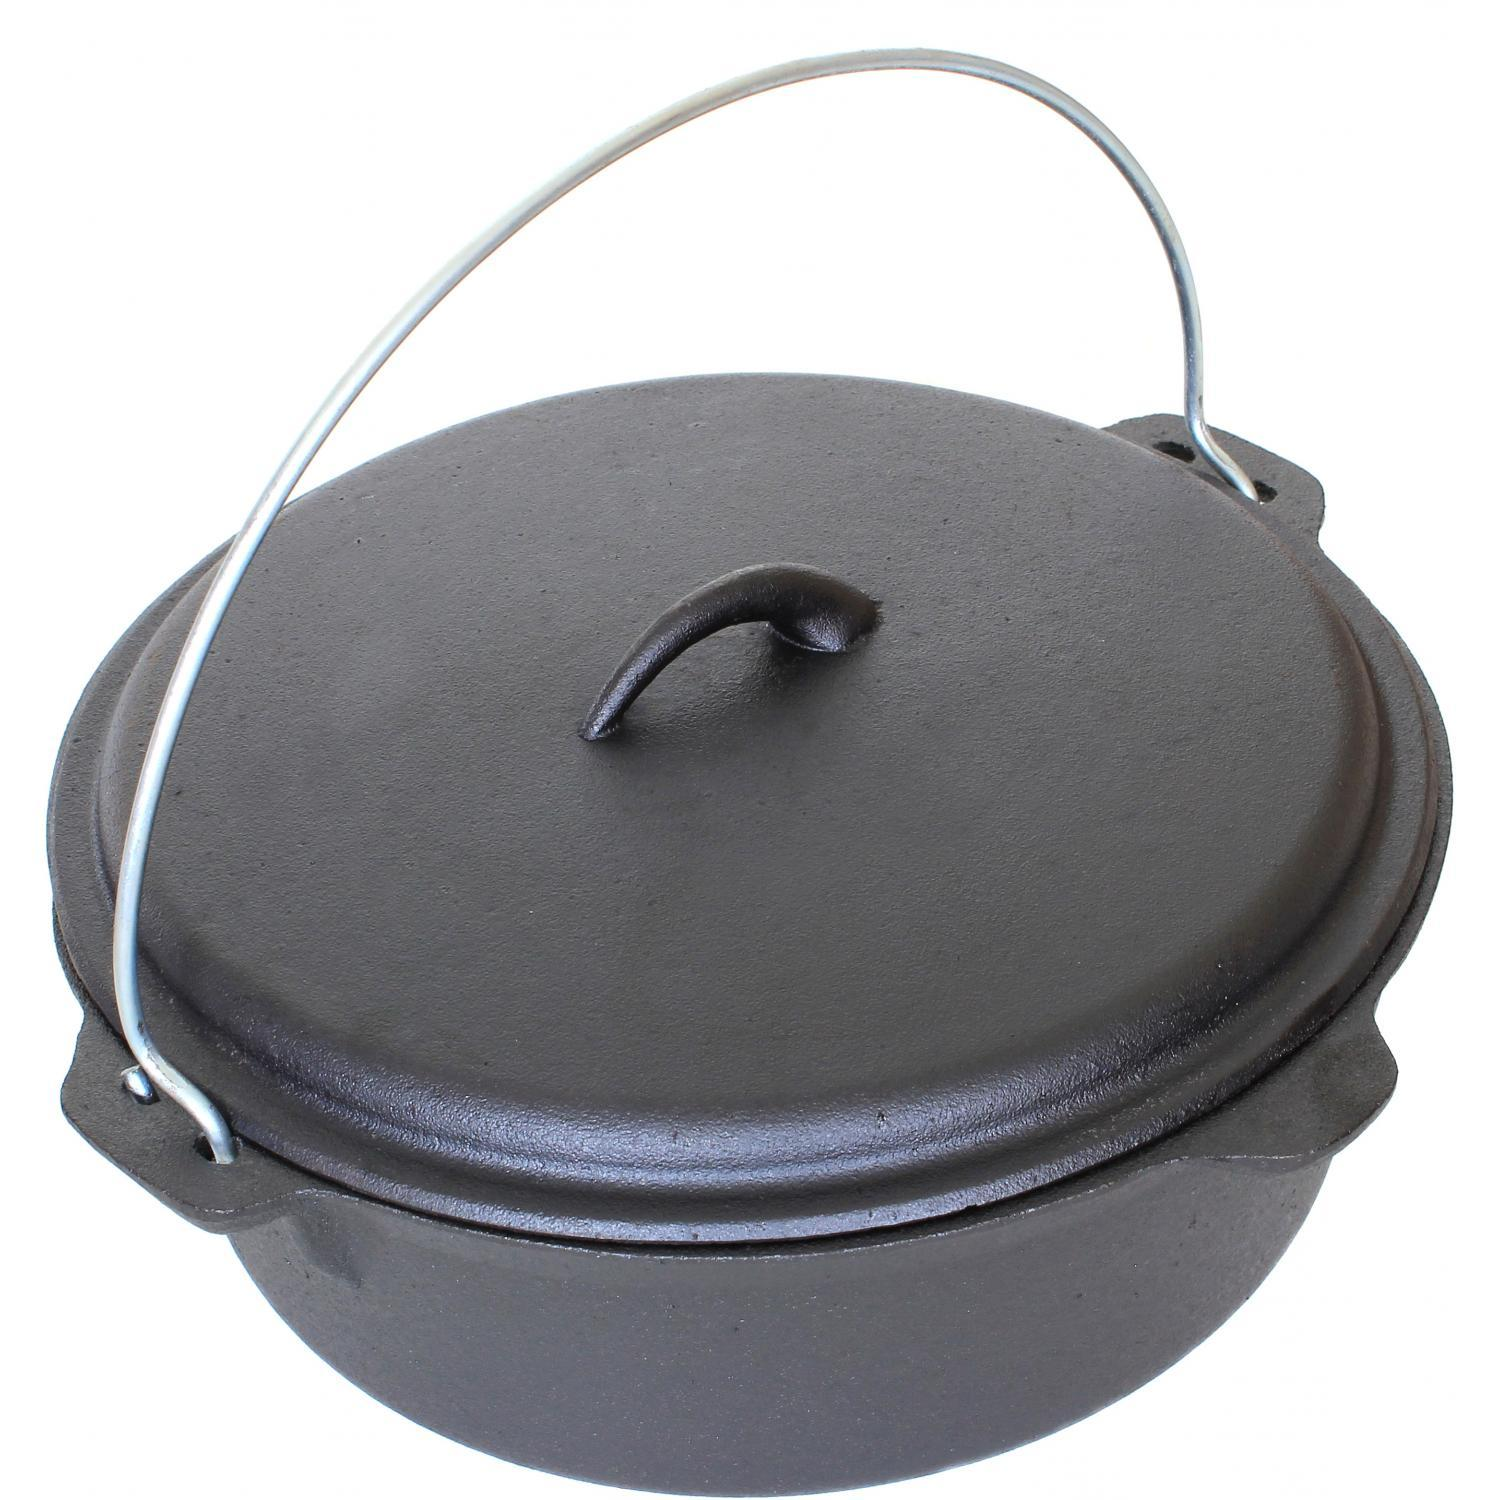 Cheap cajun cookware dutch ovens 6 quart seasoned cast iron dutch oven - Cajun Cookware Dutch Ovens 6 Quart Seasoned Cast Iron Dutch Oven